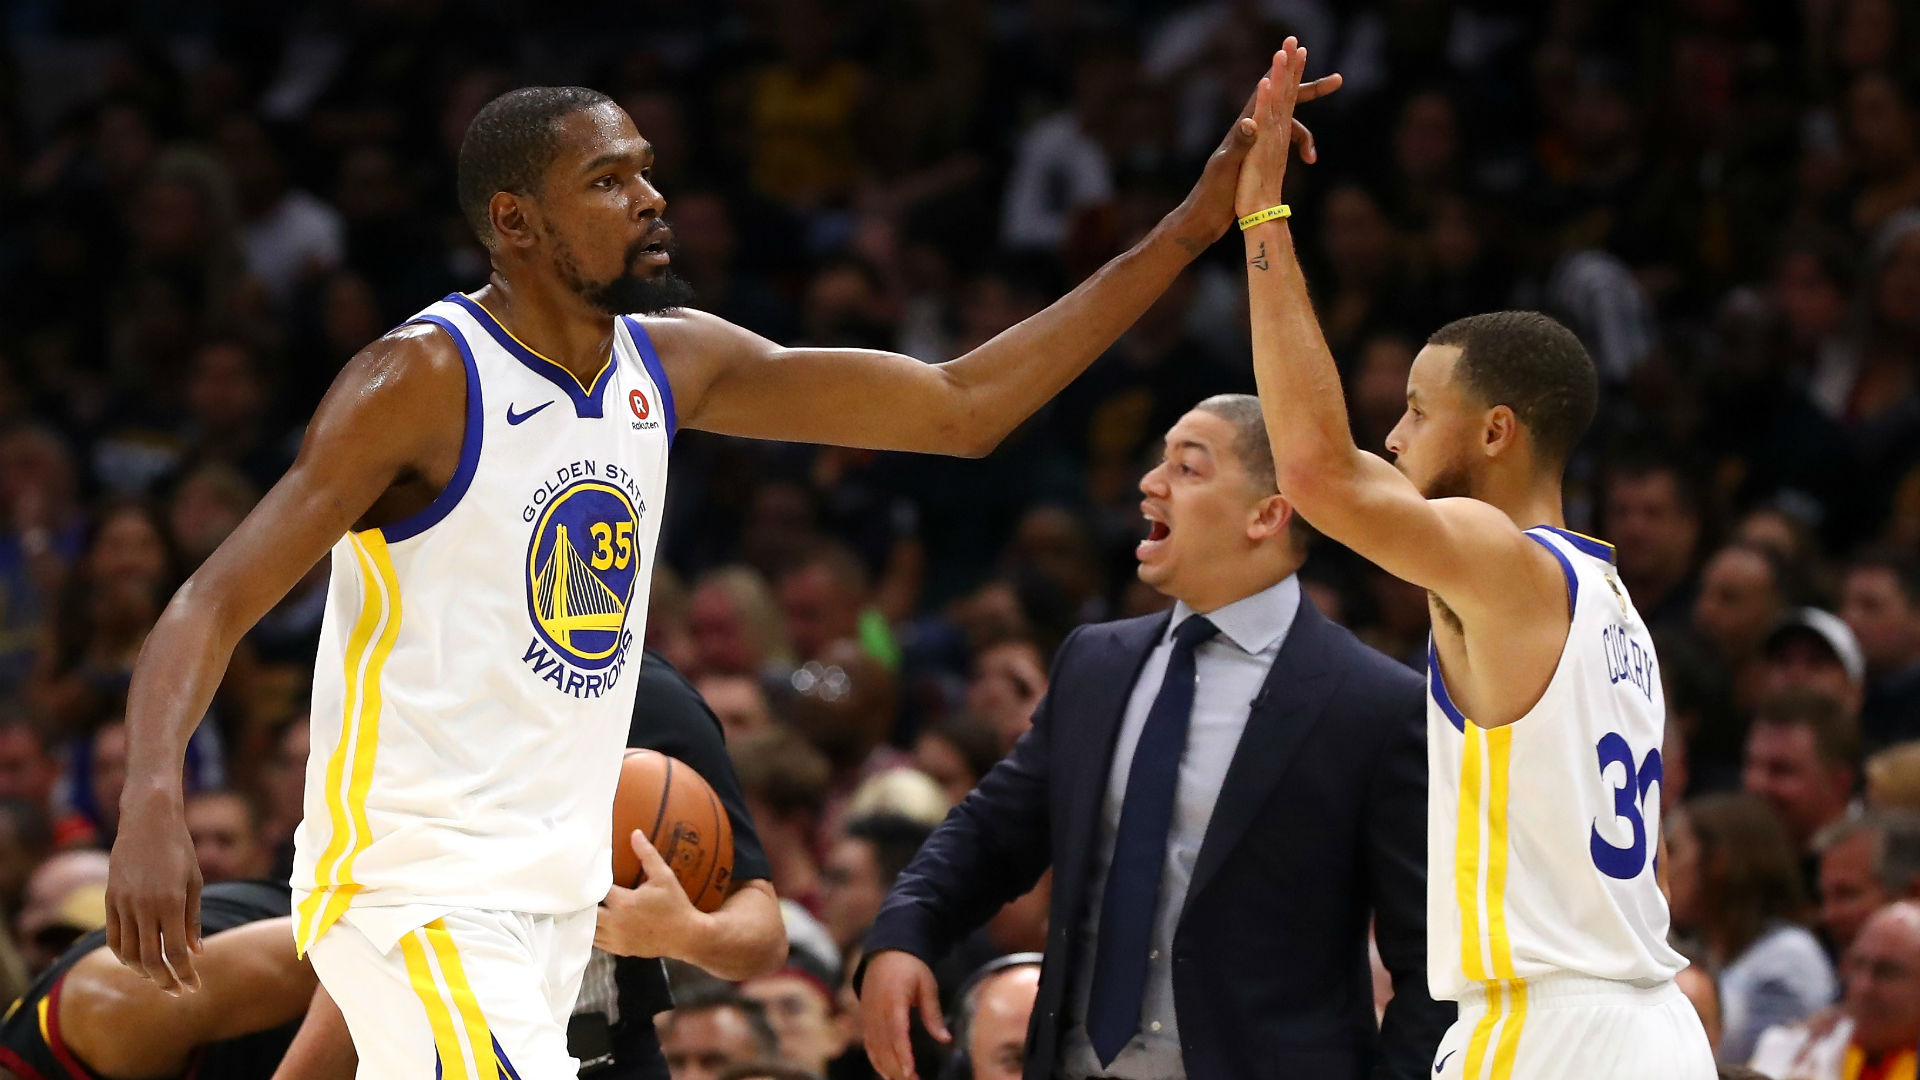 Nba S 10 Best Championship Duos How High Do Curry And